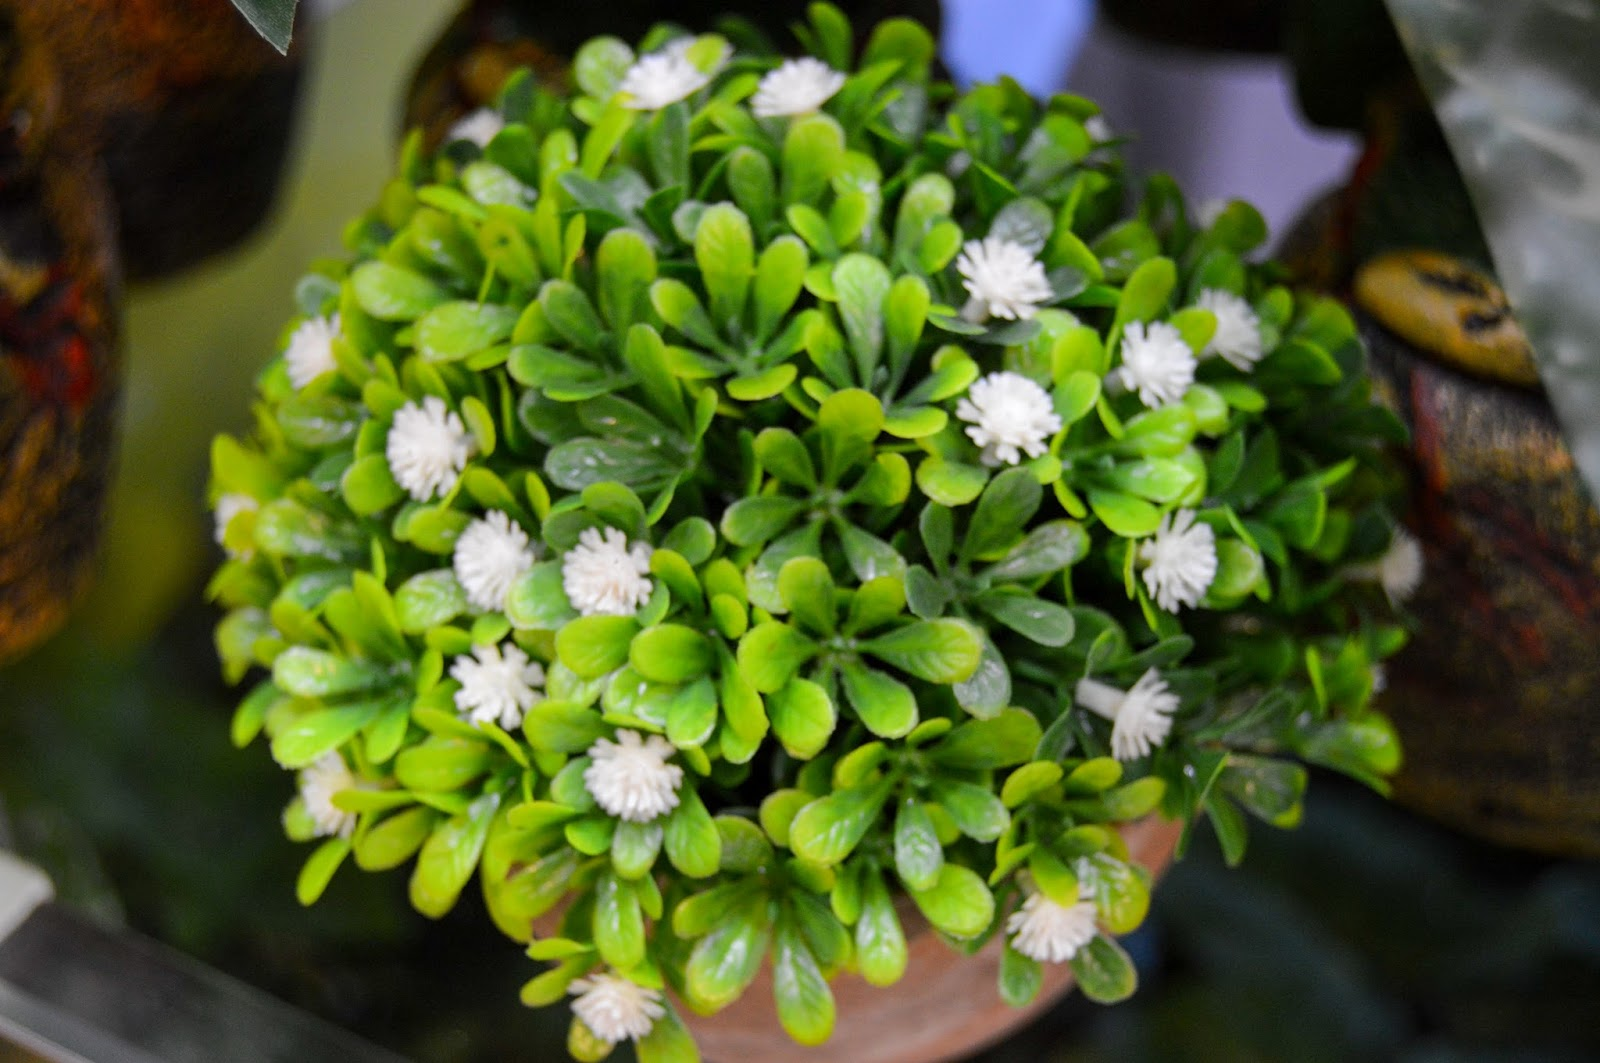 Flower vase green leaves and white flowers - free stock photos - free images & wallpapers